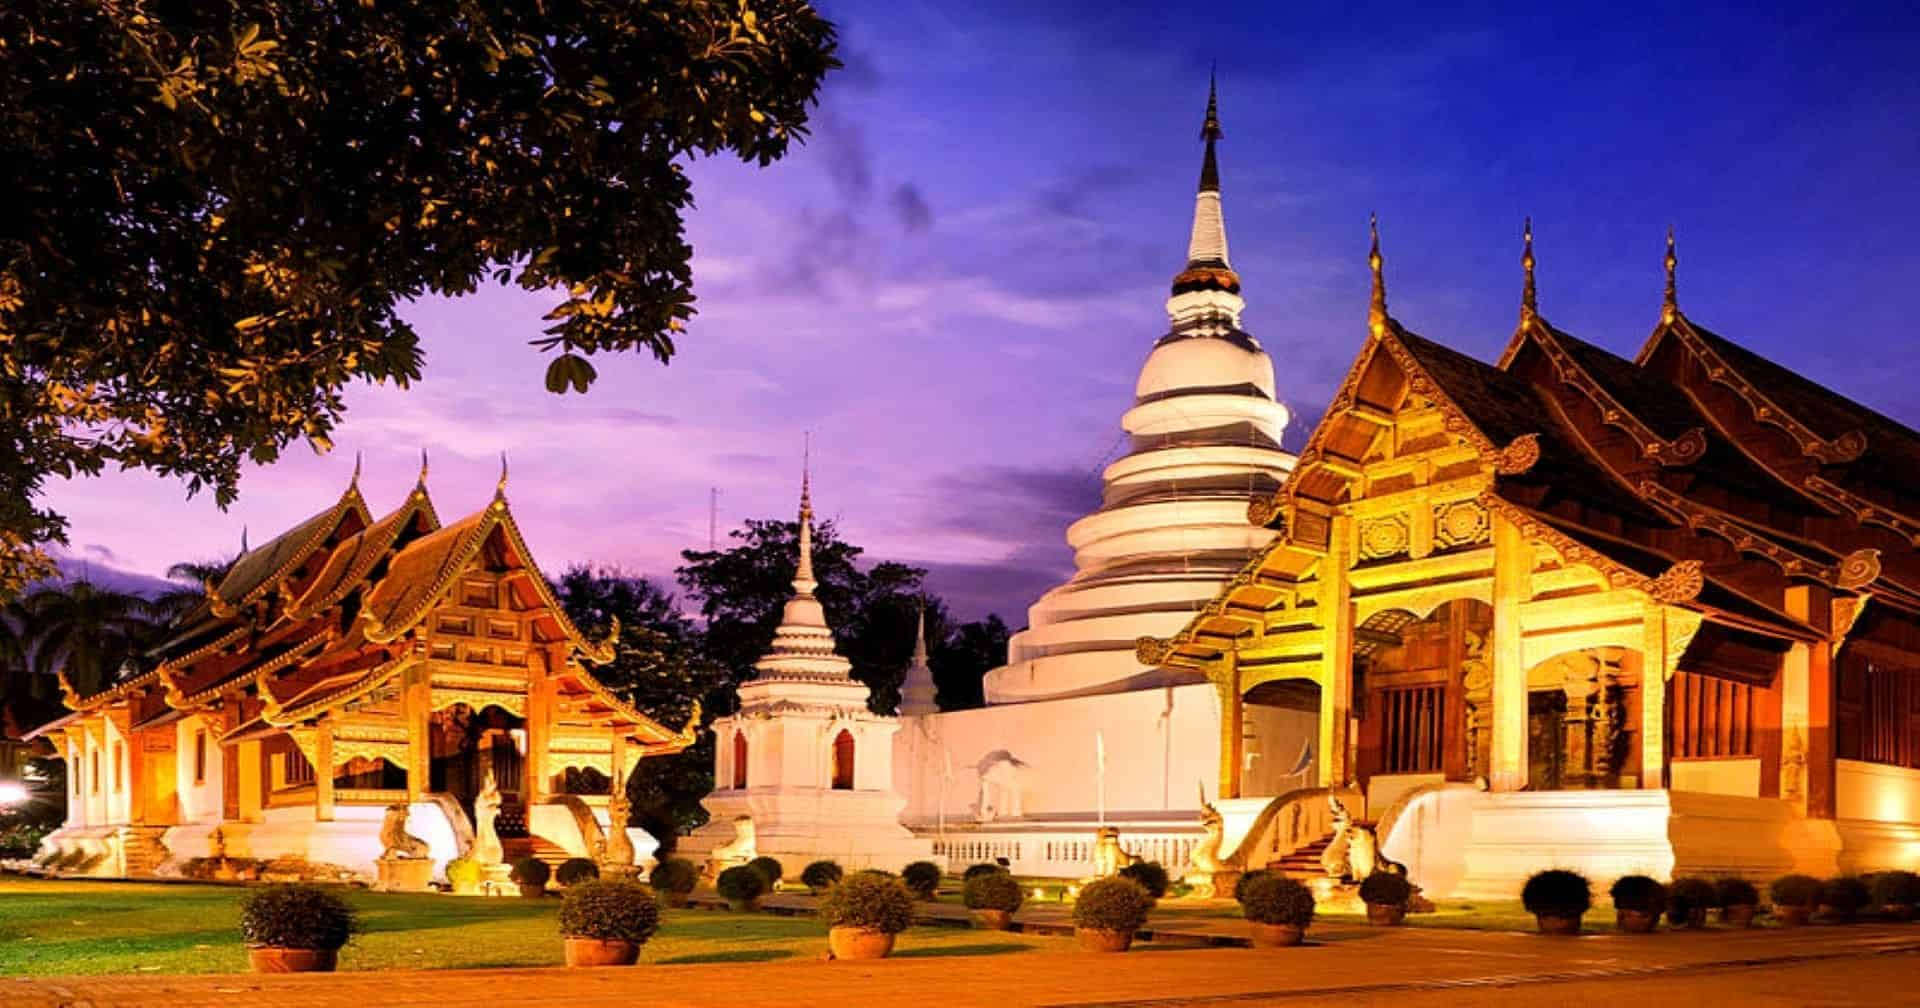 Top 20 Things to do in Chiang Mai, Thailand